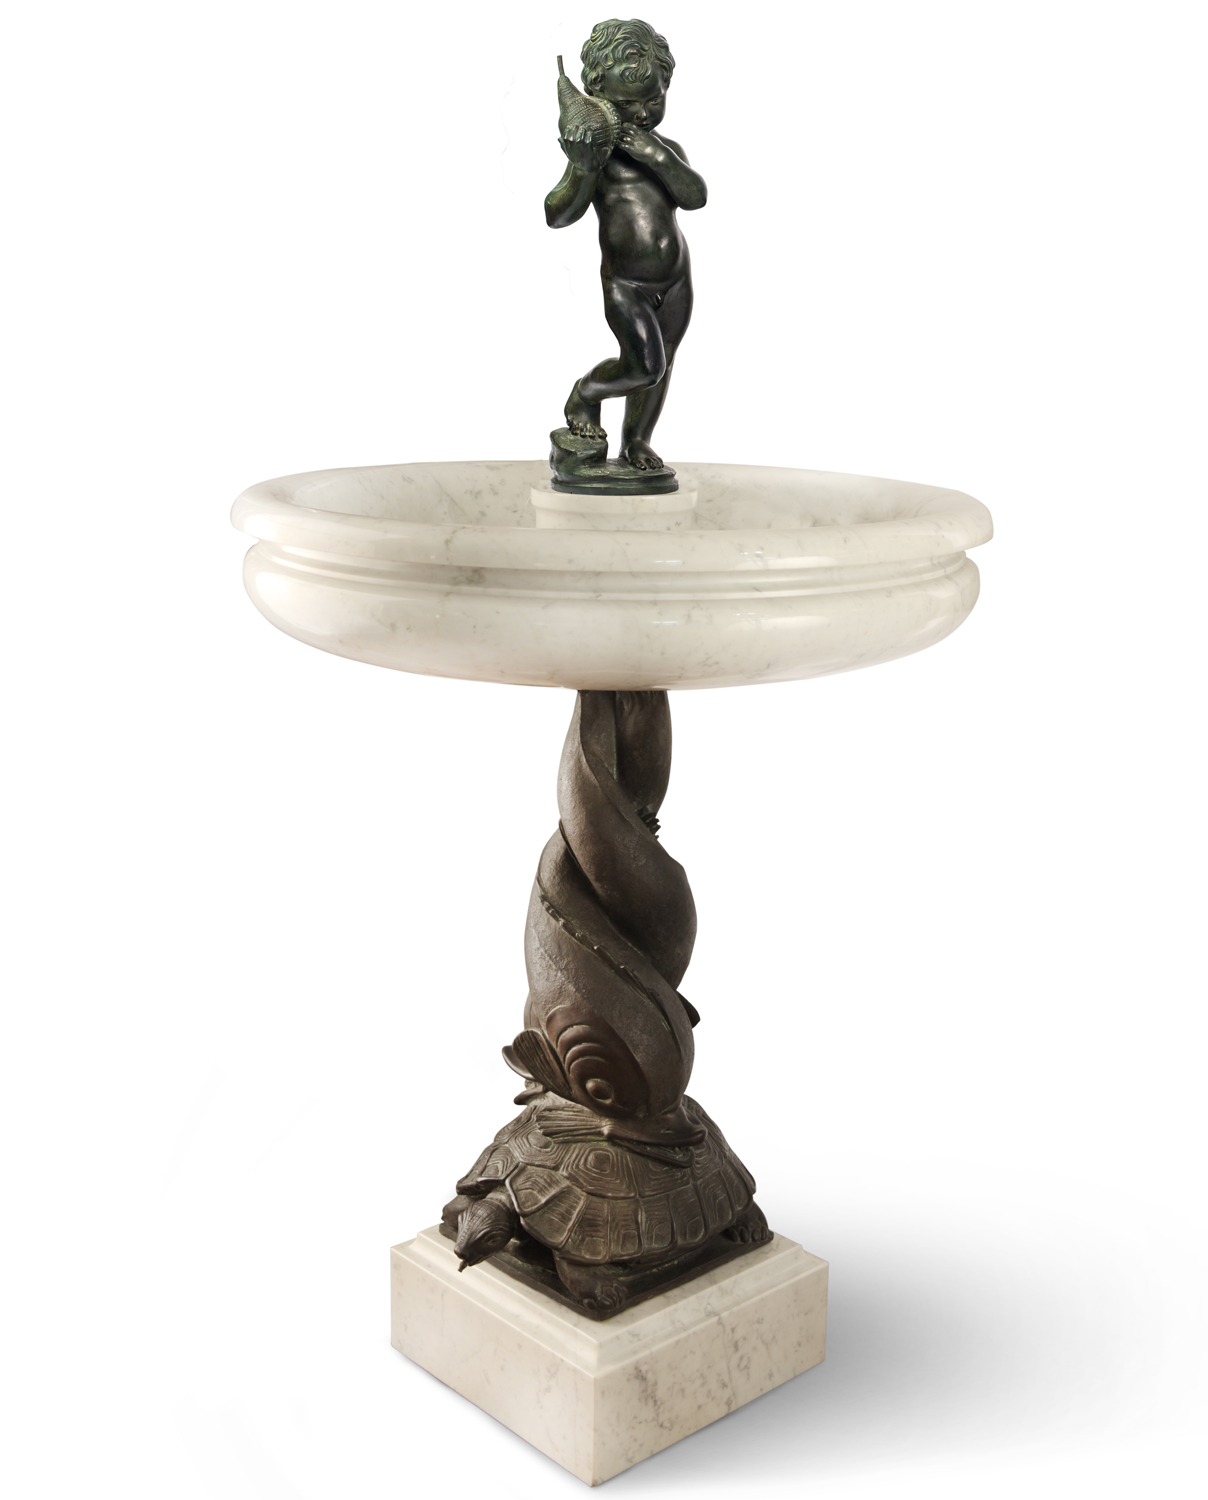 Dolphin on turtle fountain. Bronze and marble fountain for sale, Pietro Bazzanti Art Gallery, Florence, Italy